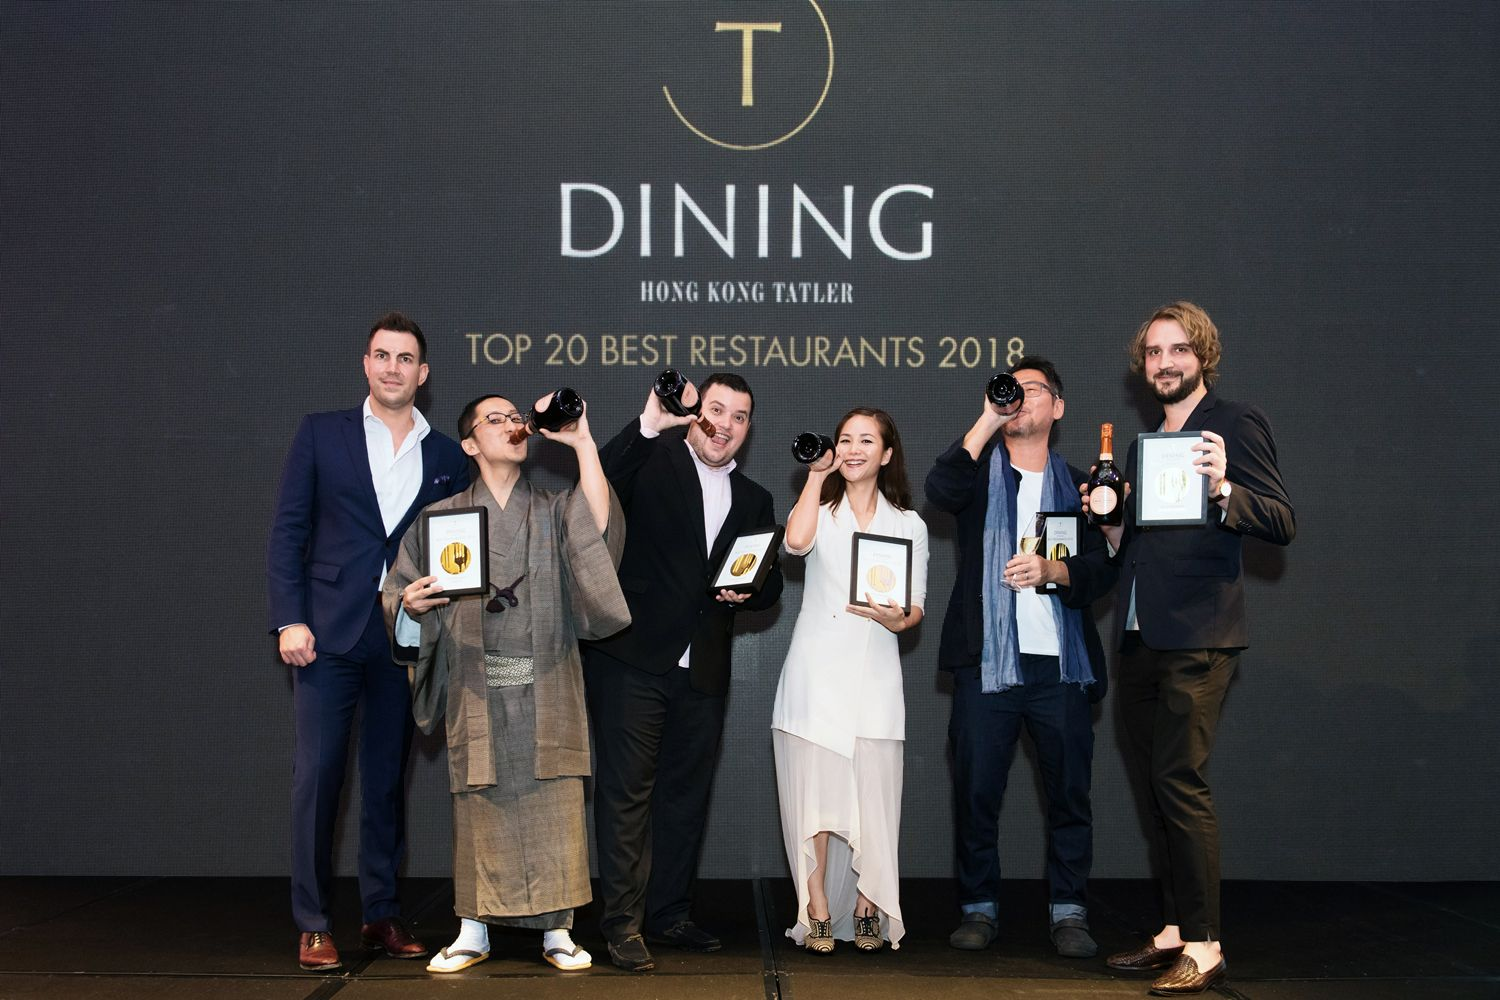 Video: What You Missed At The T.Dining Best Restaurants Awards 2018